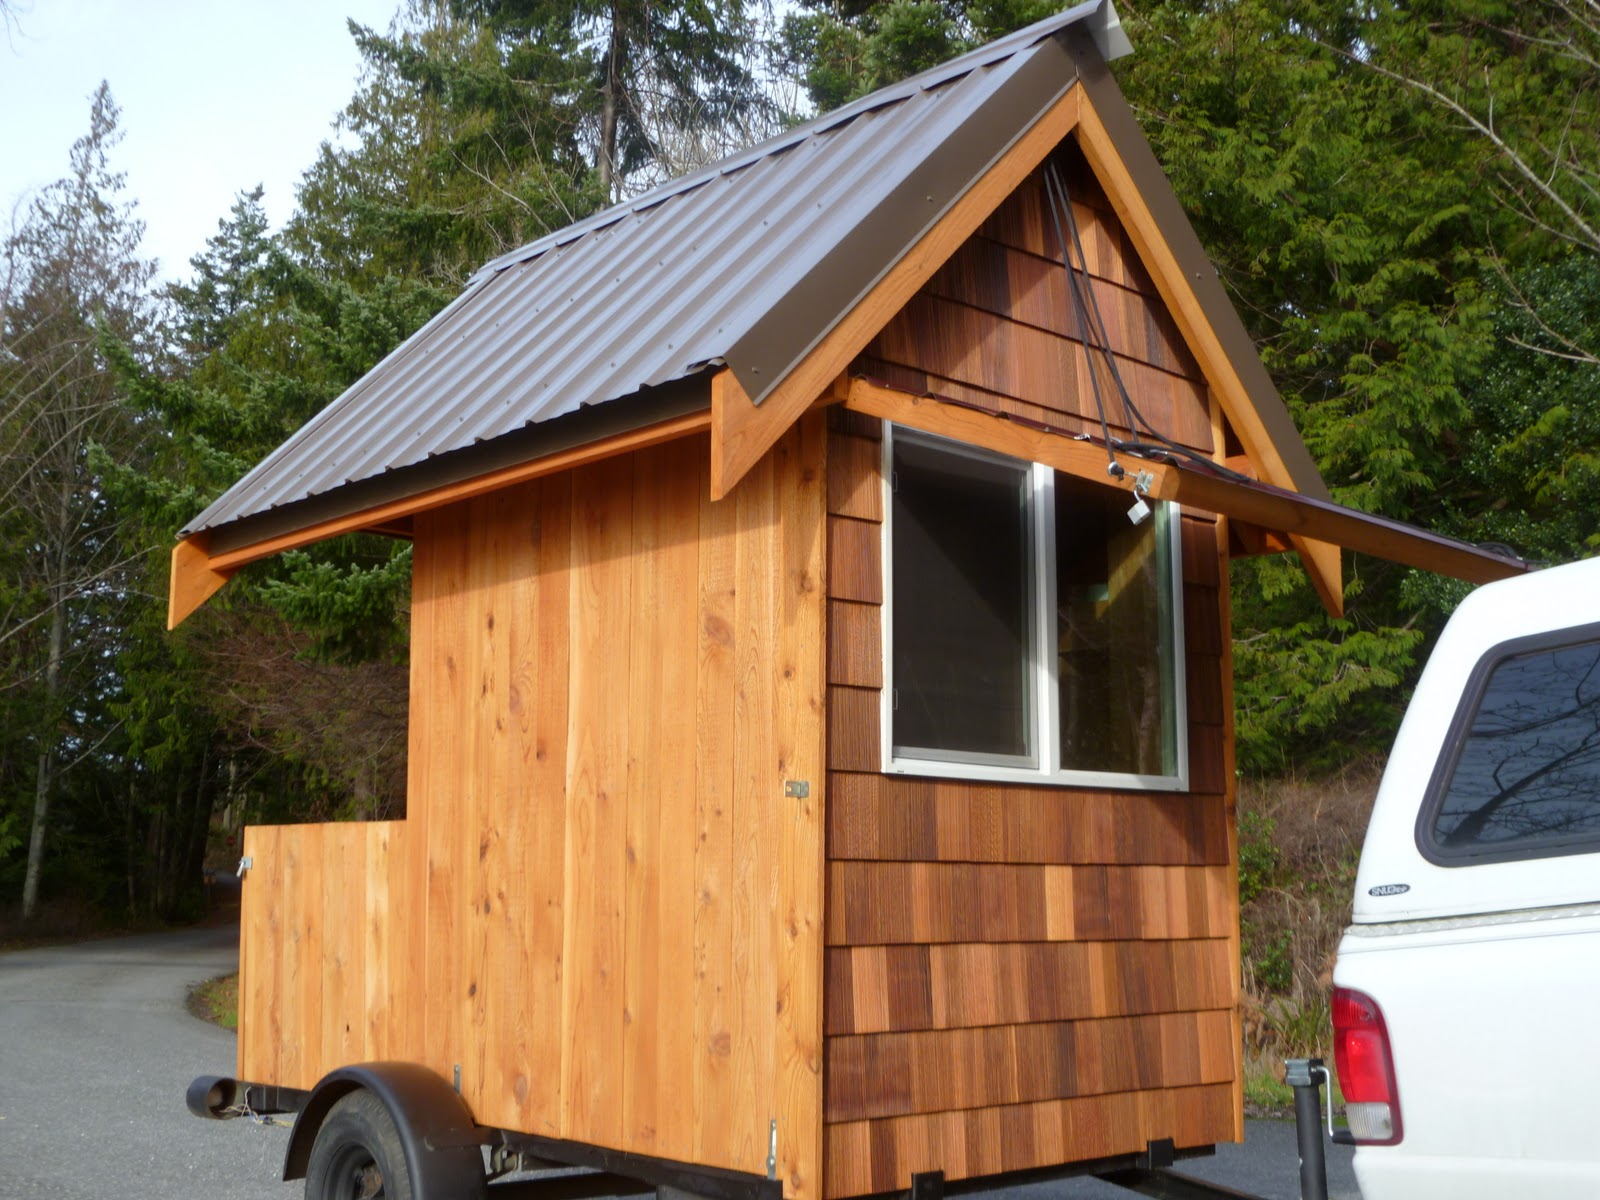 Groovy Relaxshacks Com Eli Curtis Tiny Cabin On Wheels A Micro Getaway Largest Home Design Picture Inspirations Pitcheantrous